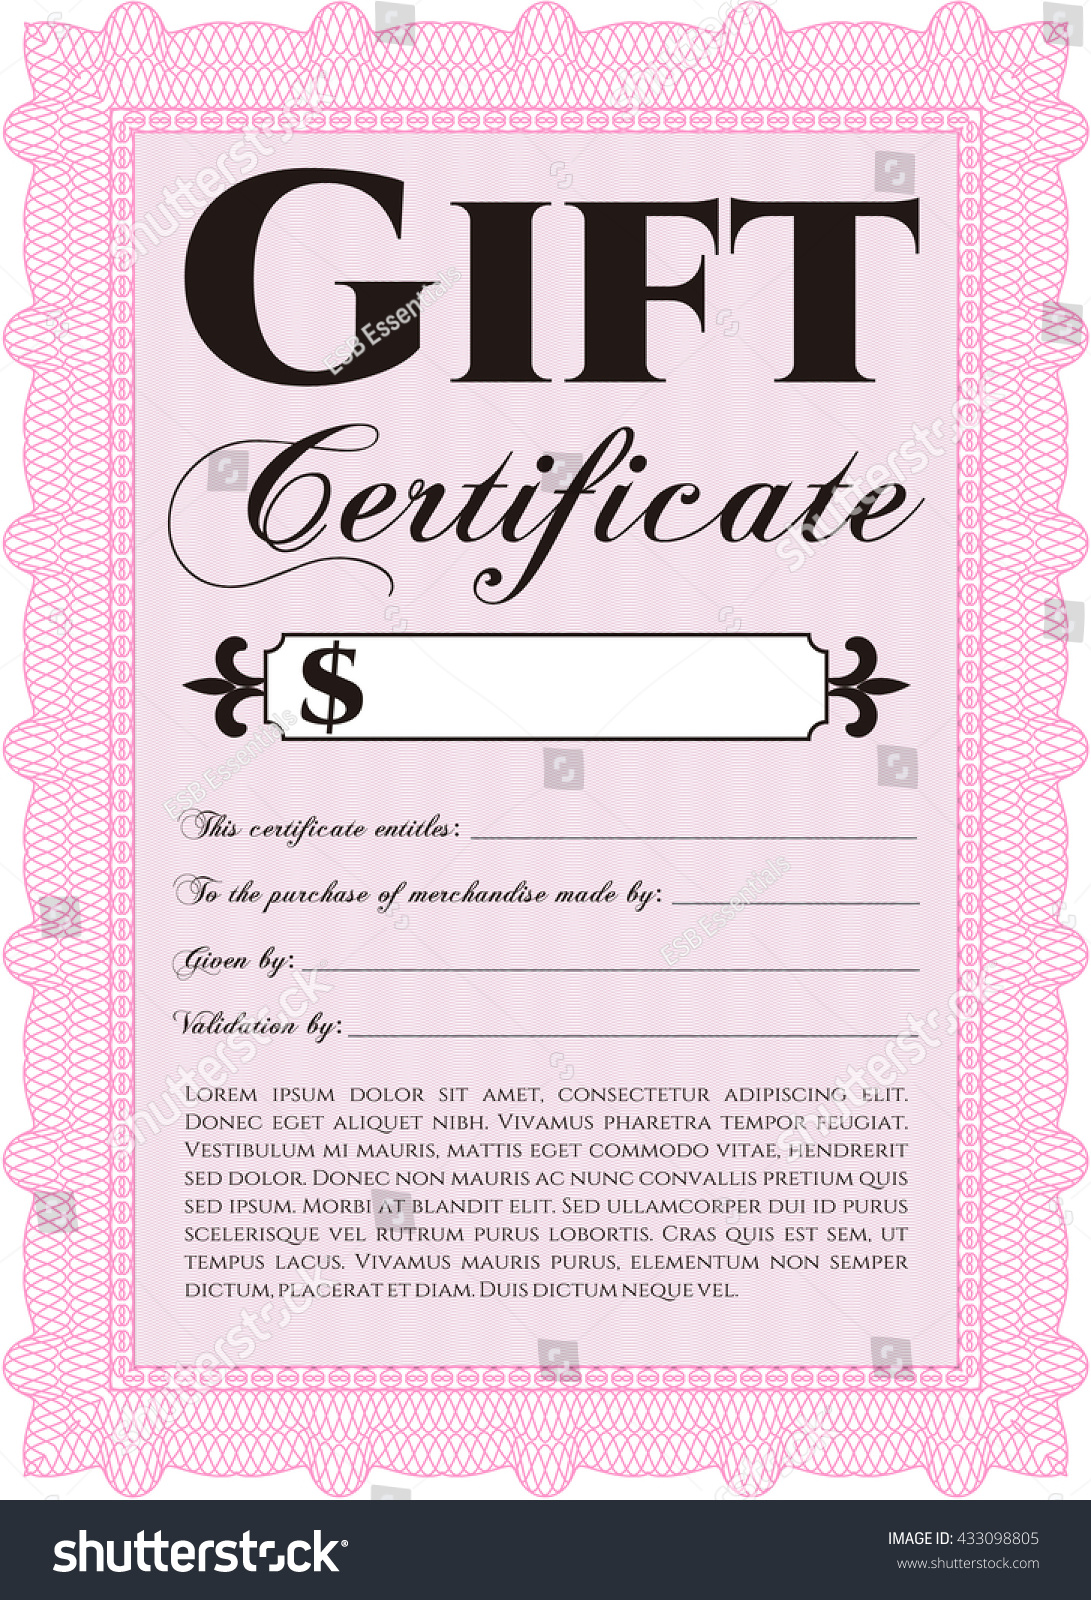 Free gift certificate template for word printable gift elegant gift certificate template images templates example free stock vector gift certificate template printer friendly complex xflitez Choice Image